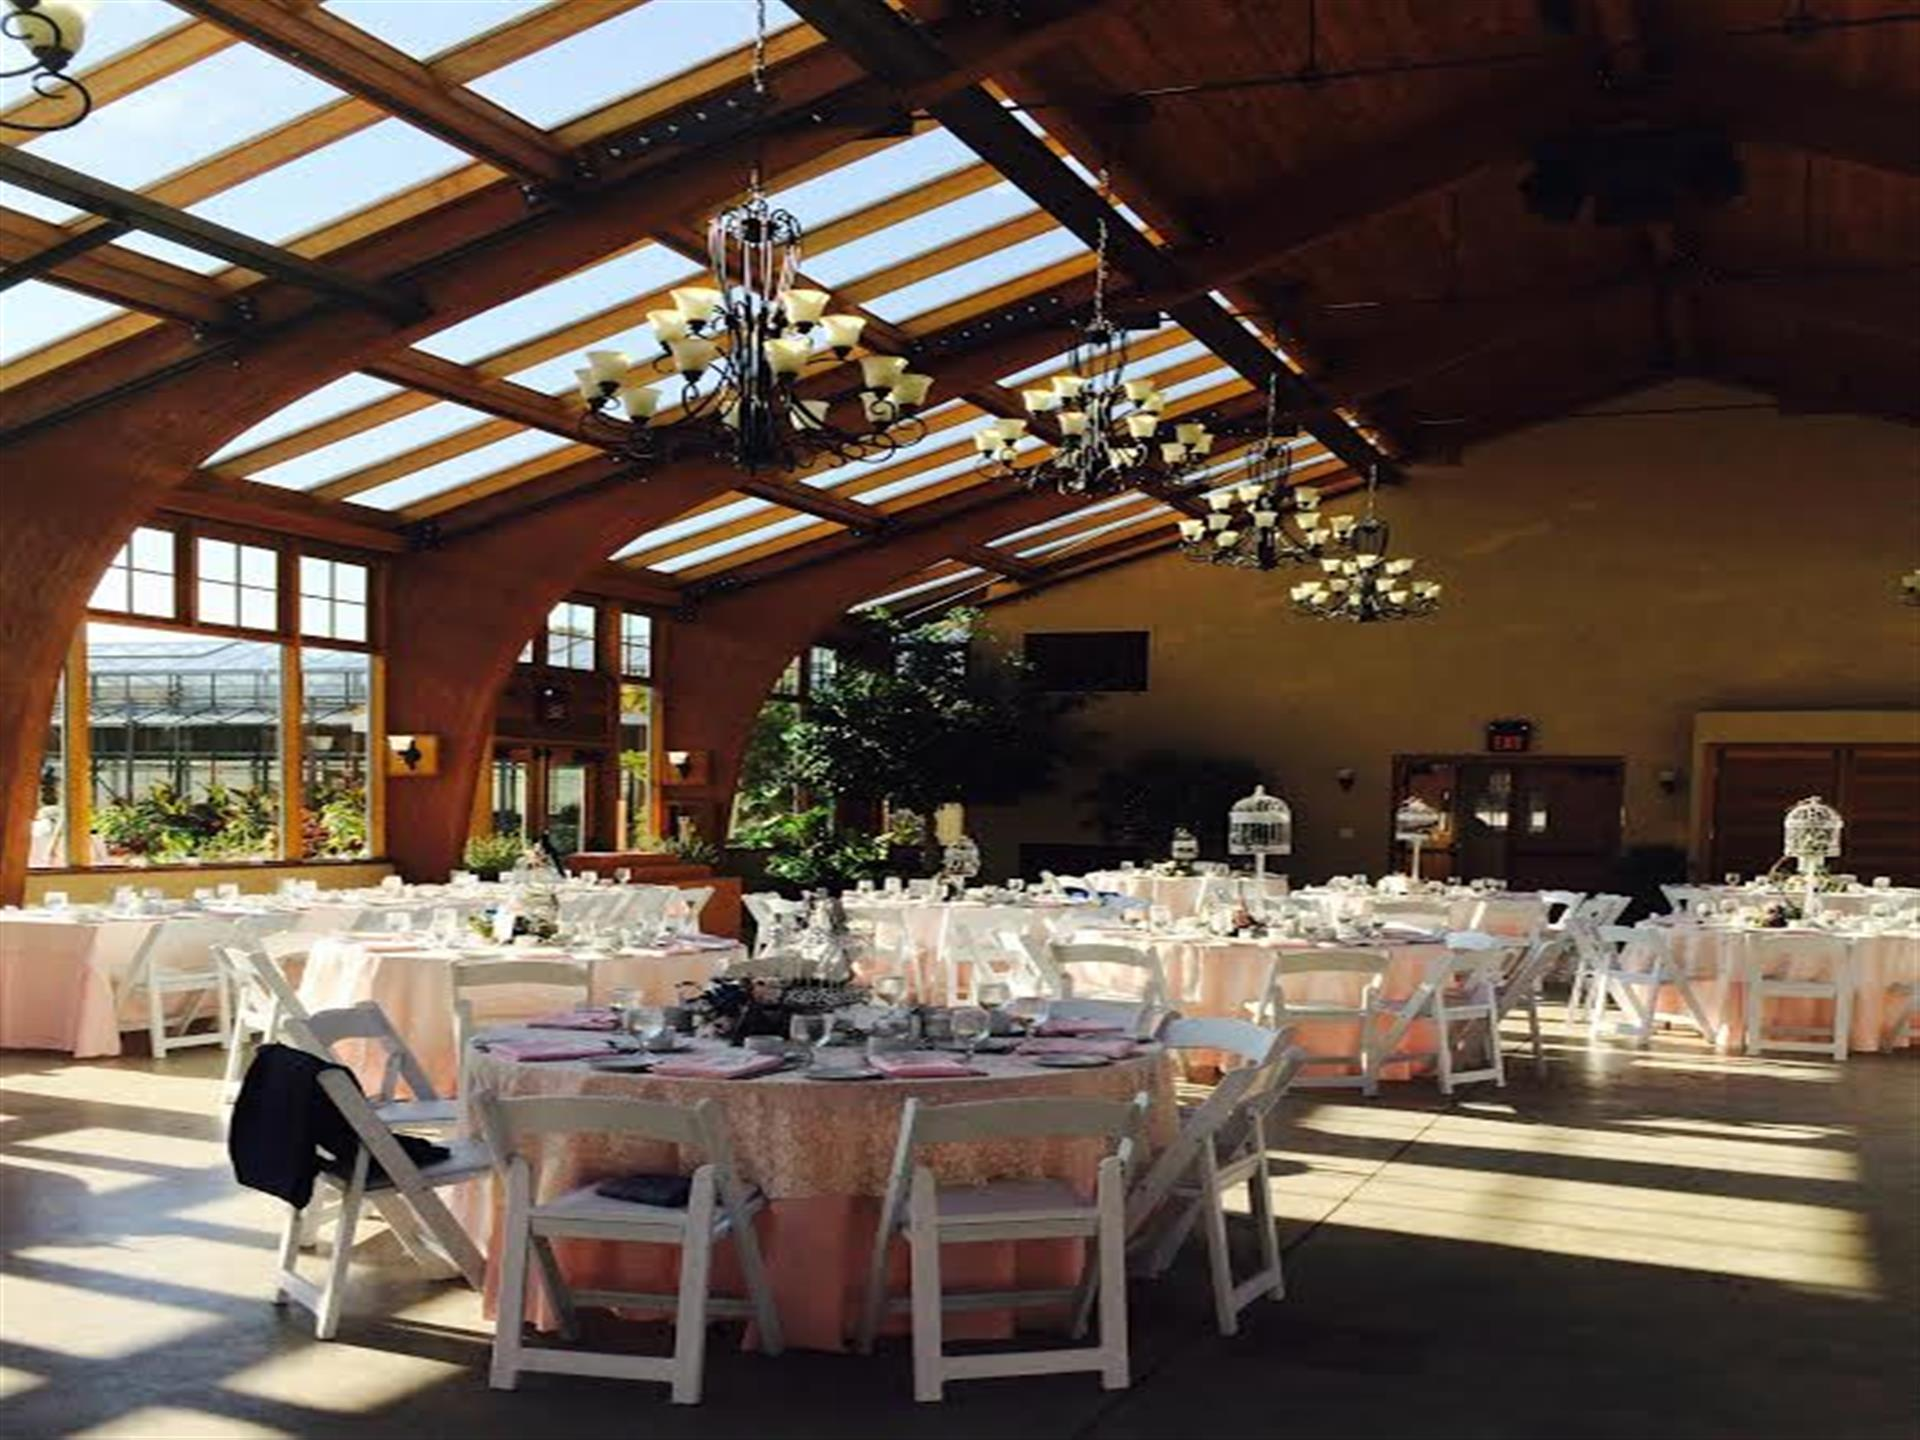 banquet tables set inside dining room with glass ceilings